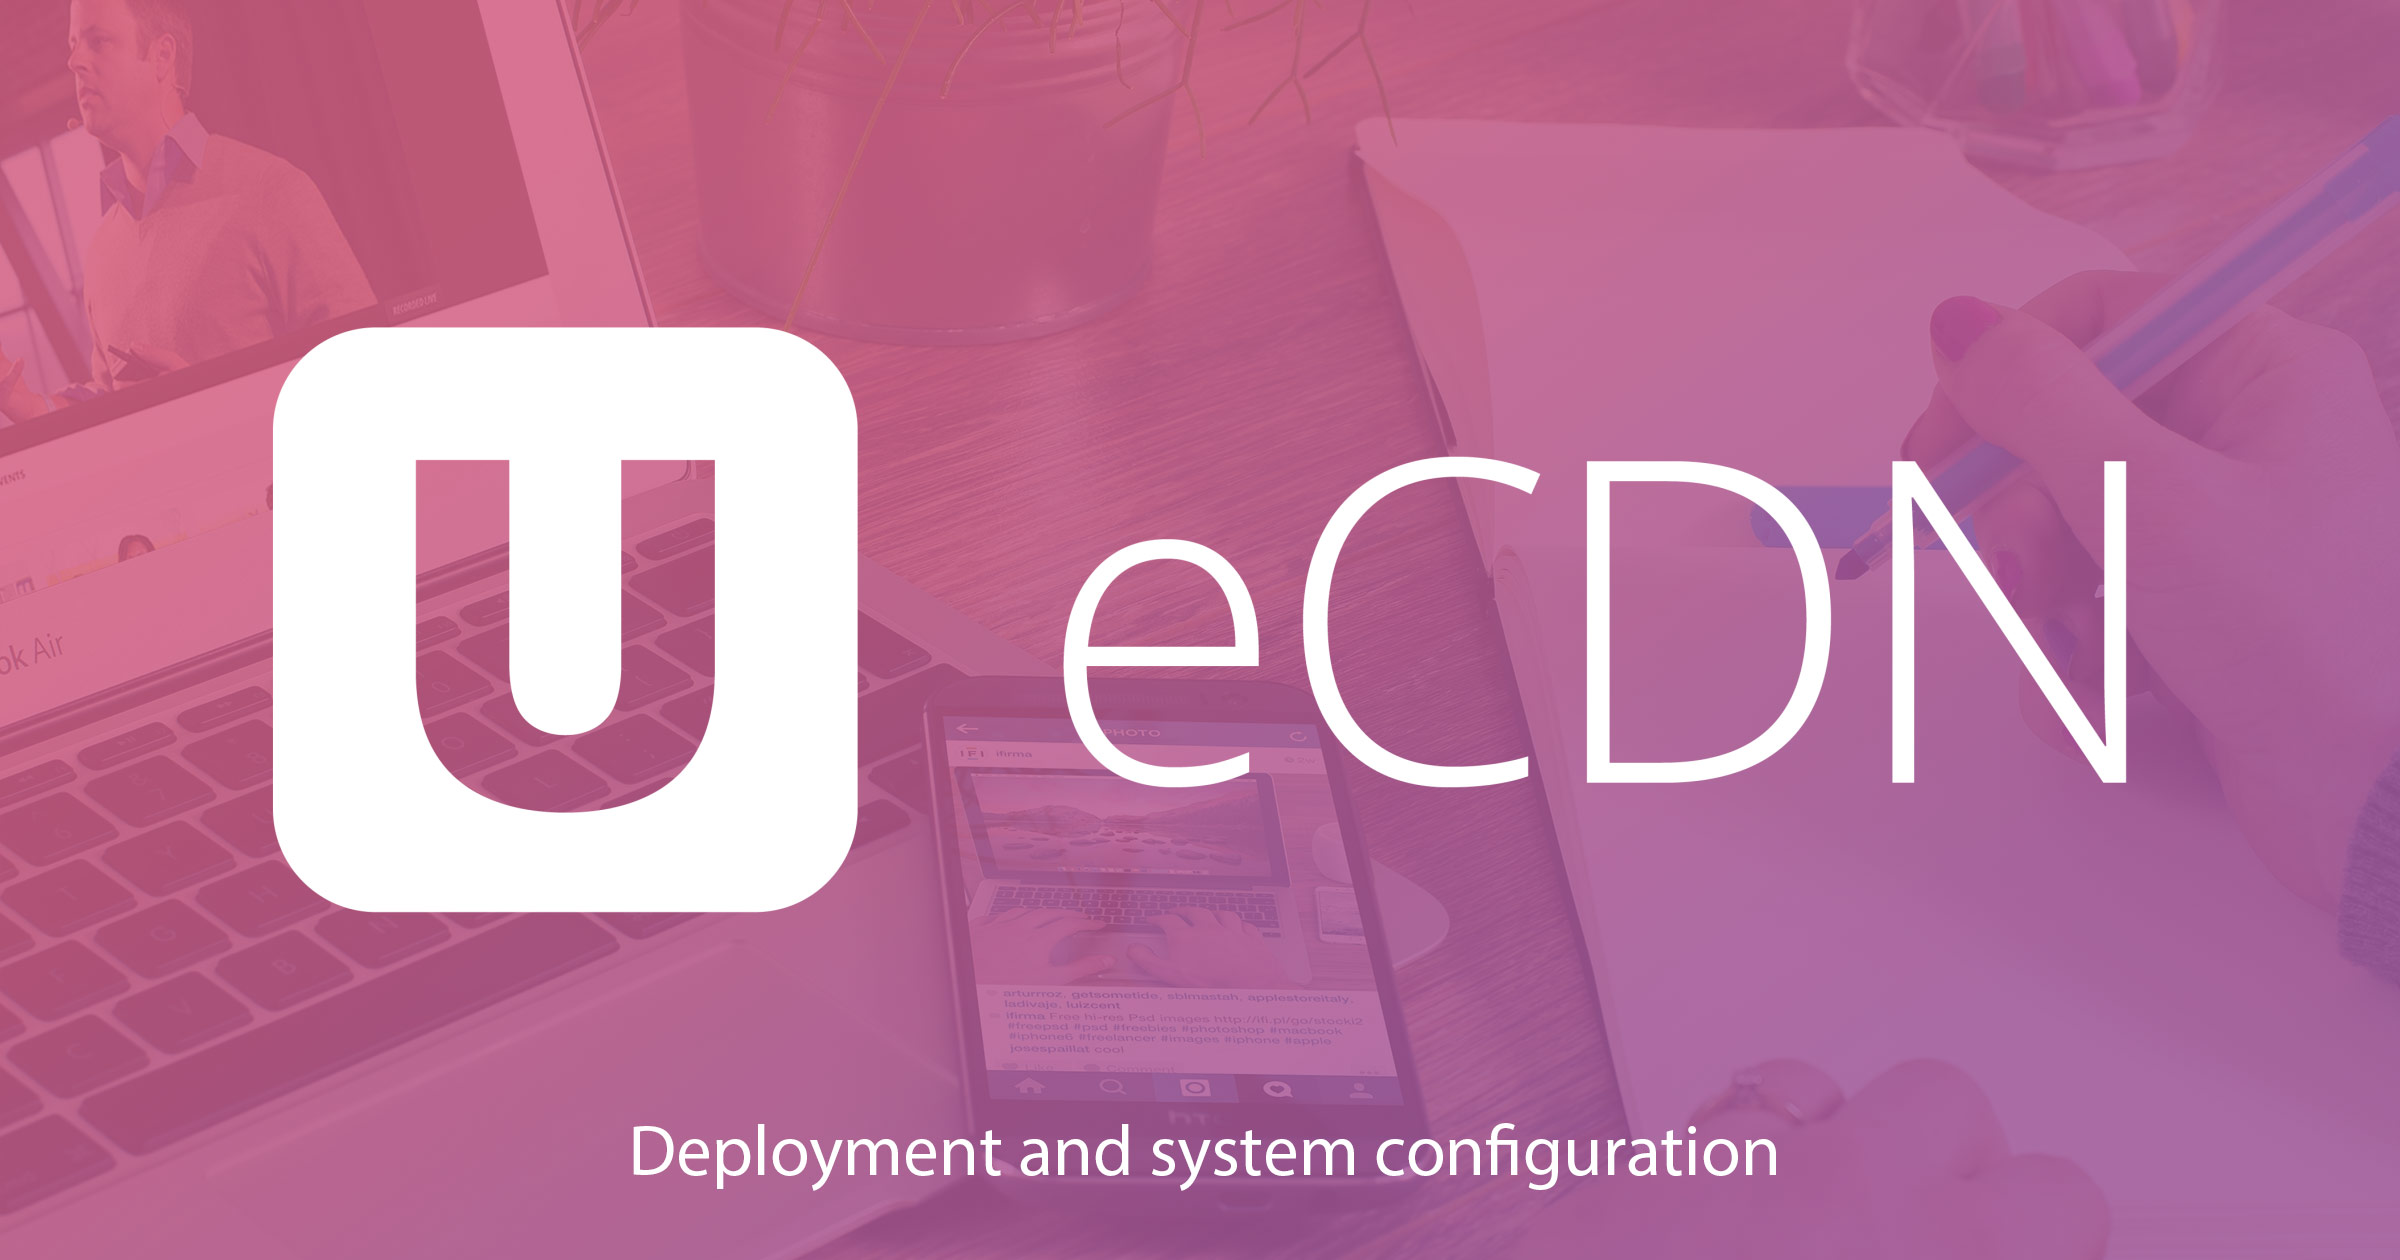 eCDN Benefits, Deployment & System Configuration